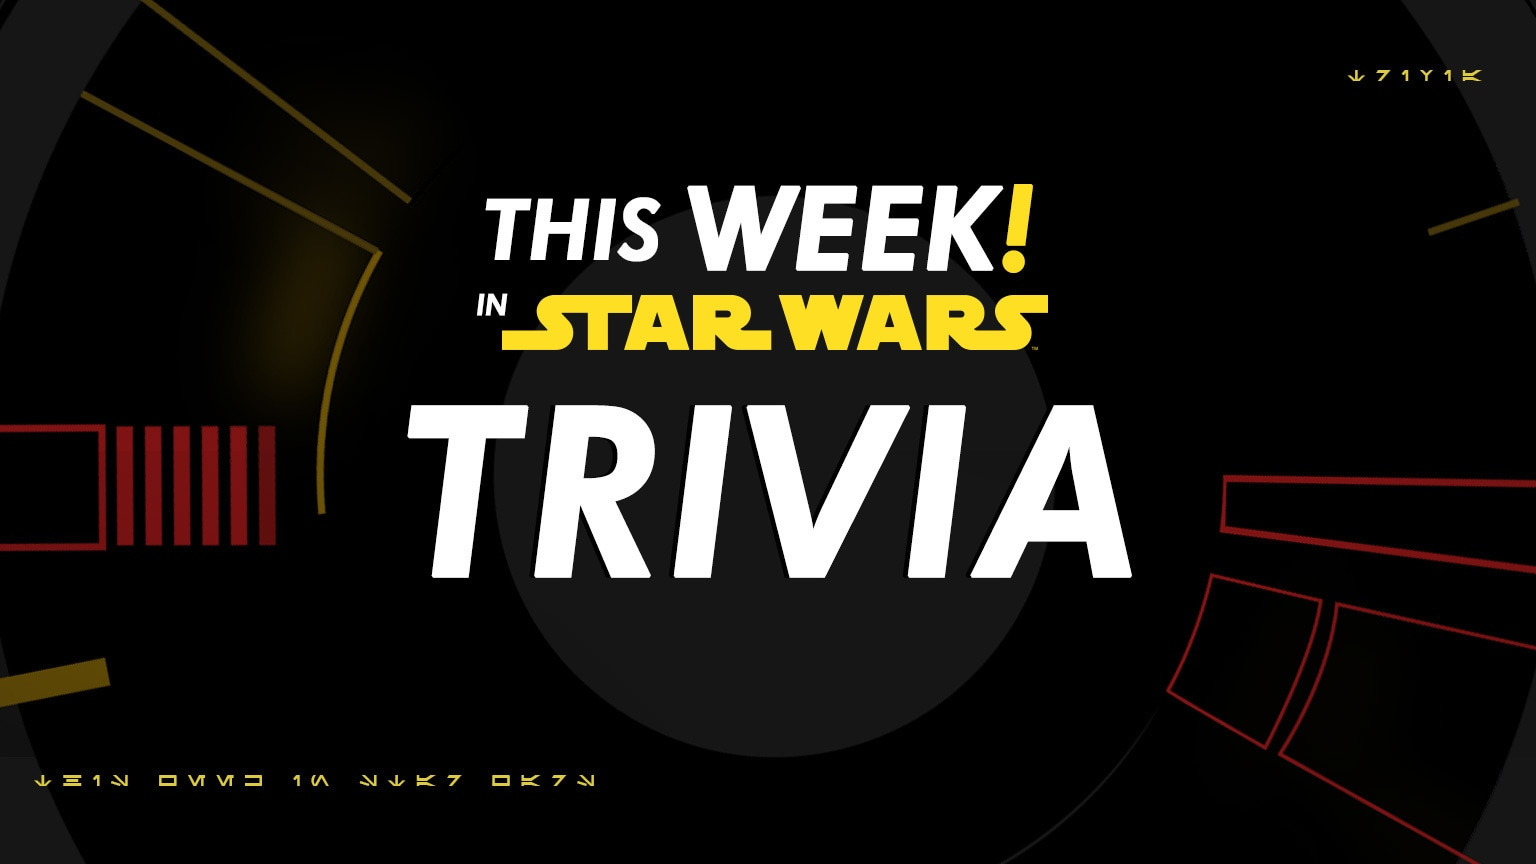 Saga-Spanning Trivia from This Week! In Star Wars